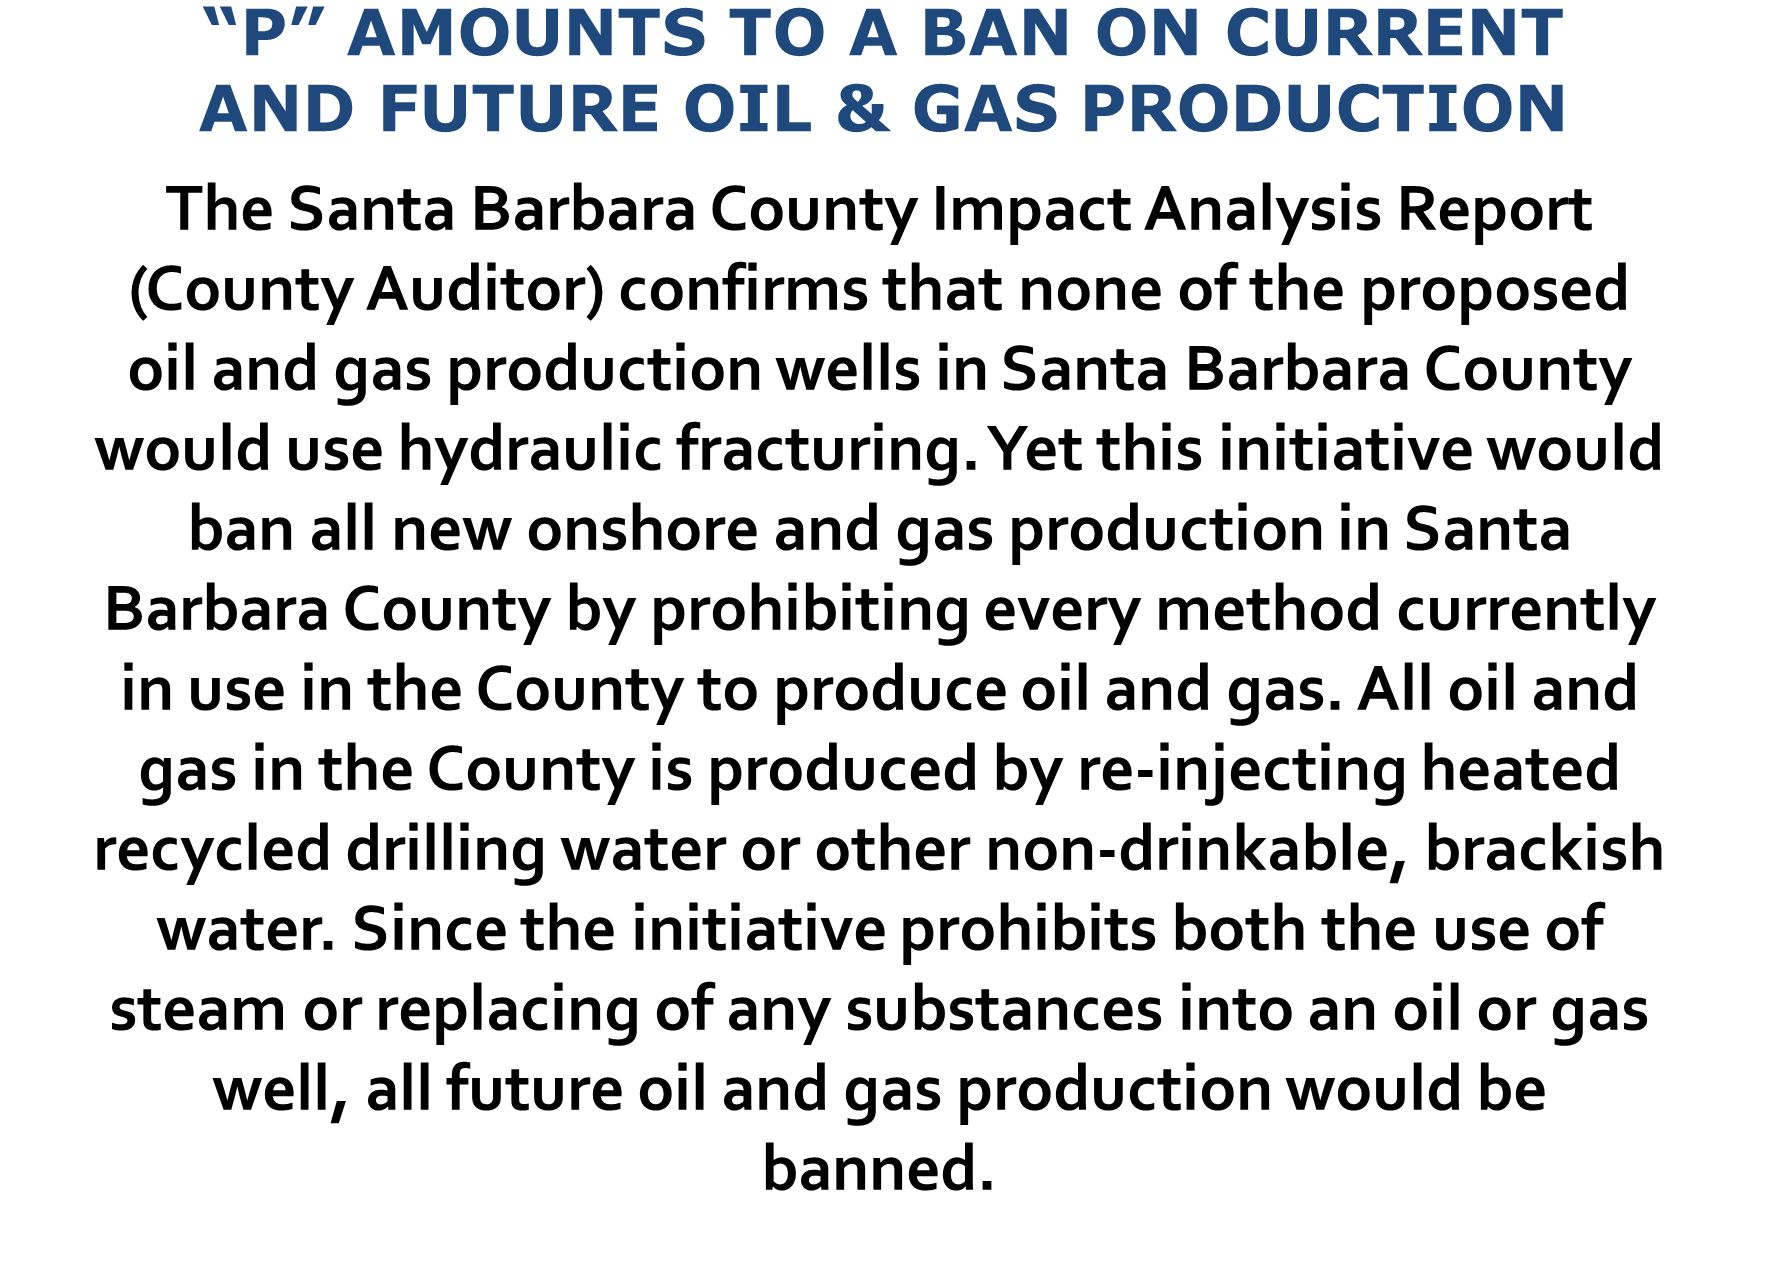 P AMOUNTS TO A BAN ON CURRENT AND FUTURE OIL & GAS PRODUCTION The Santa Barbara County Impact Analysis Report (County Auditor) confirms that none of the proposed oil and gas production wells in Santa Barbara County would use hydraulic fracturing.